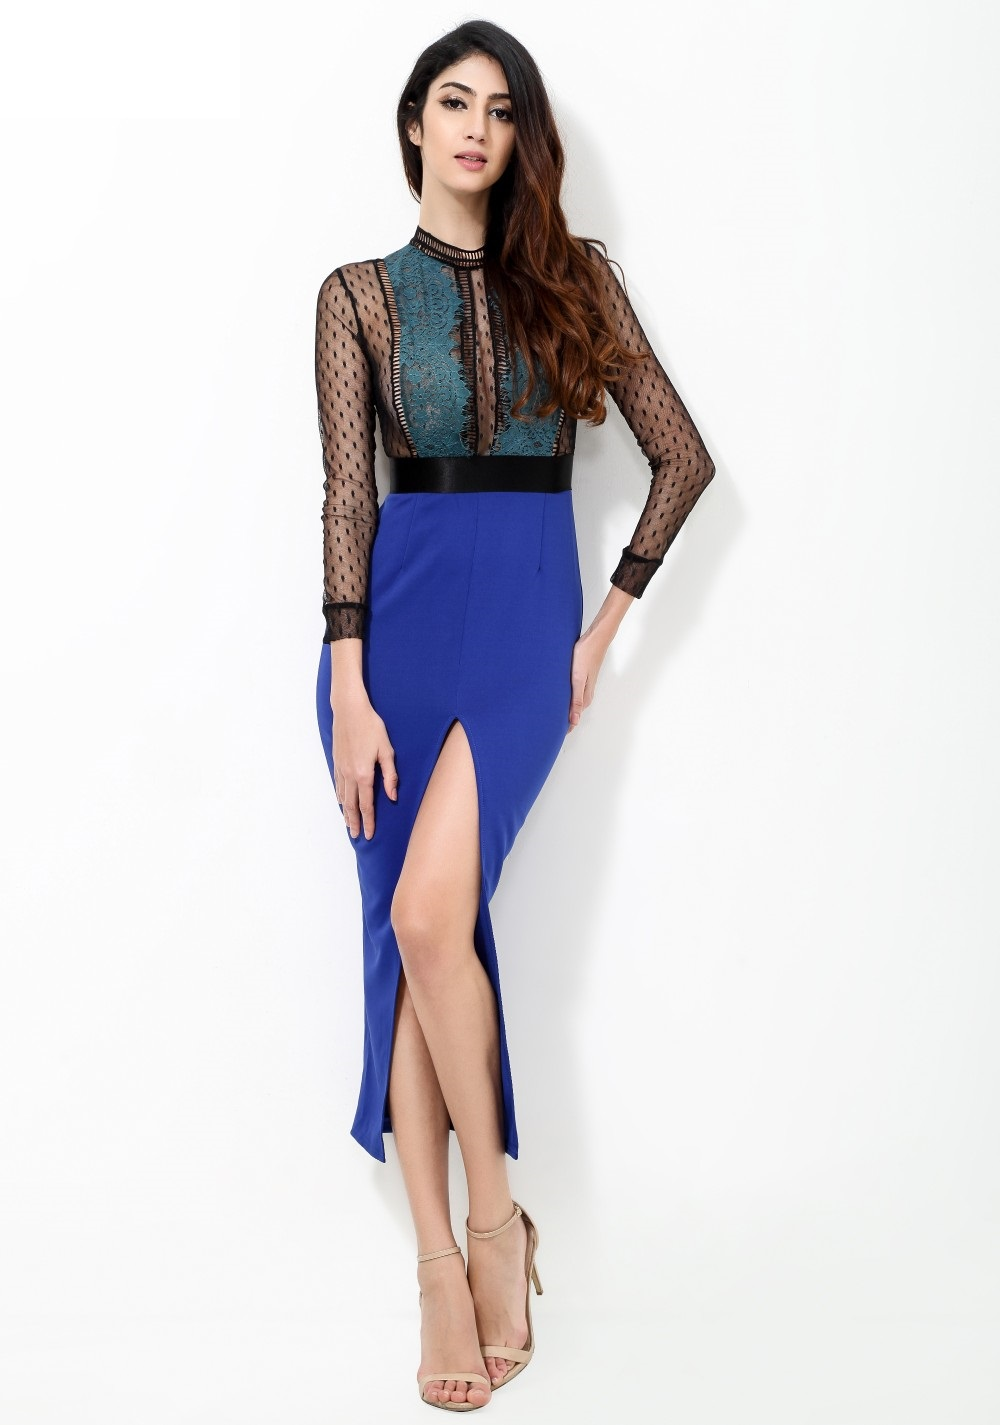 23018e126ba1 Sexy Blue Lace Dress · somethingshelikes · Online Store Powered by ...